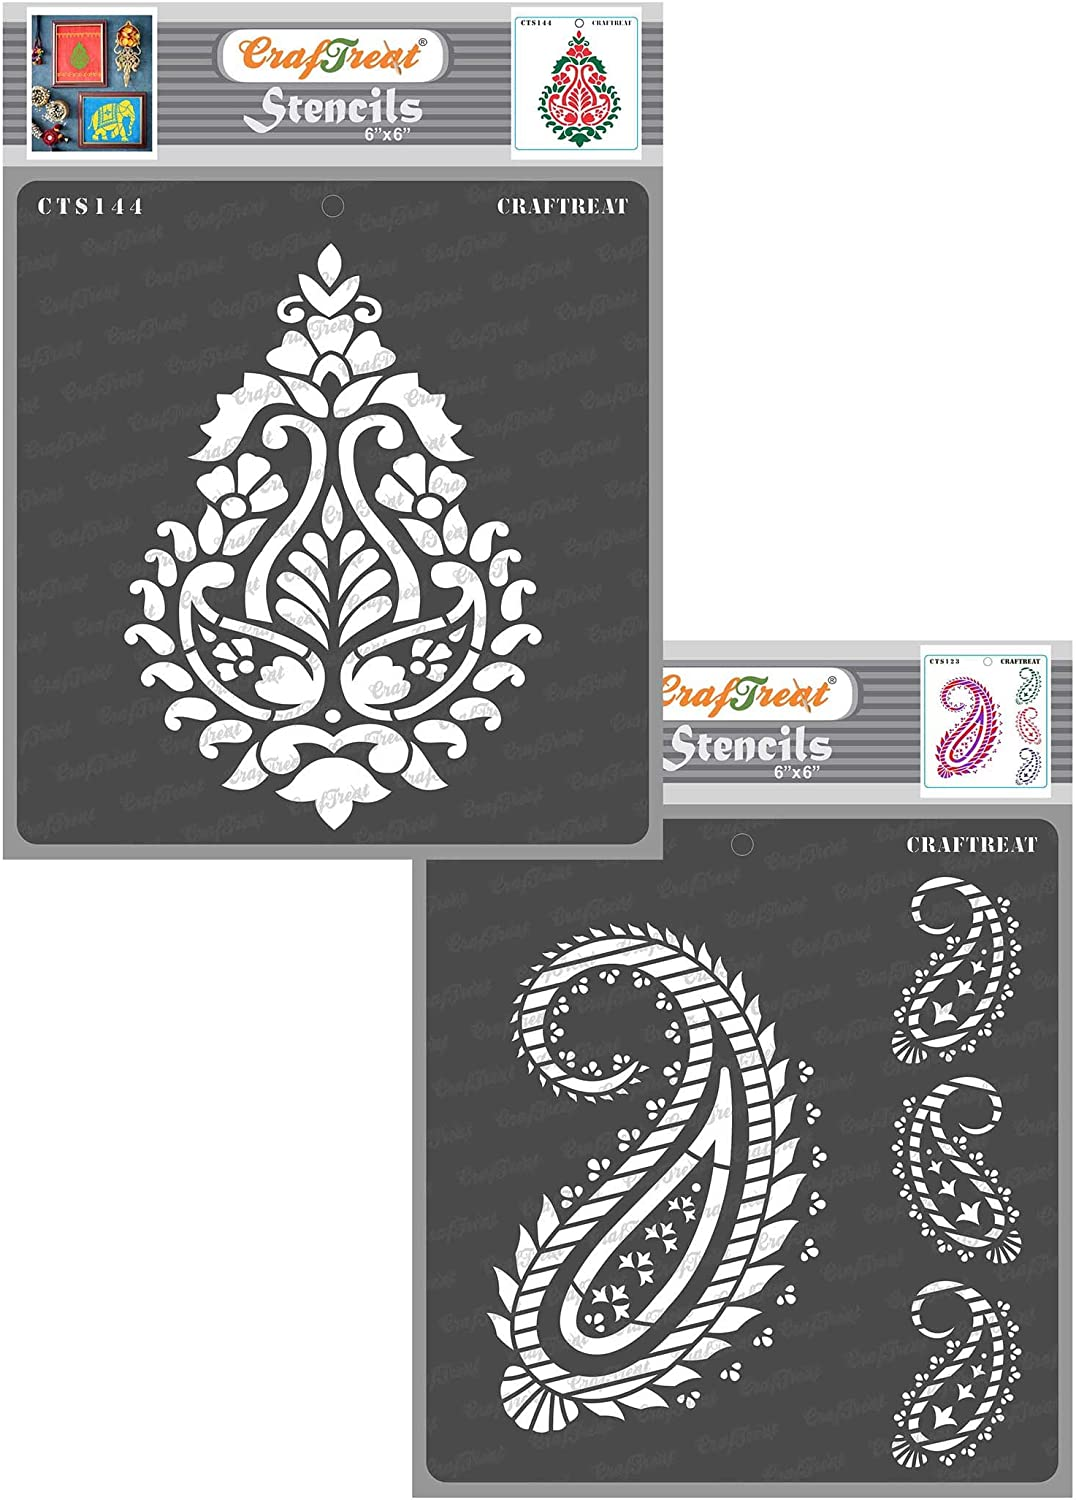 CrafTreat Paisley Stencils for Painting on Wood, Canvas, Paper, Fabric, Floor, Wall and Tile - Paisley Damask and Paisley and Border - 2 Pcs - 6x6 Inches Each - Reusable DIY Art and Craft Stencils